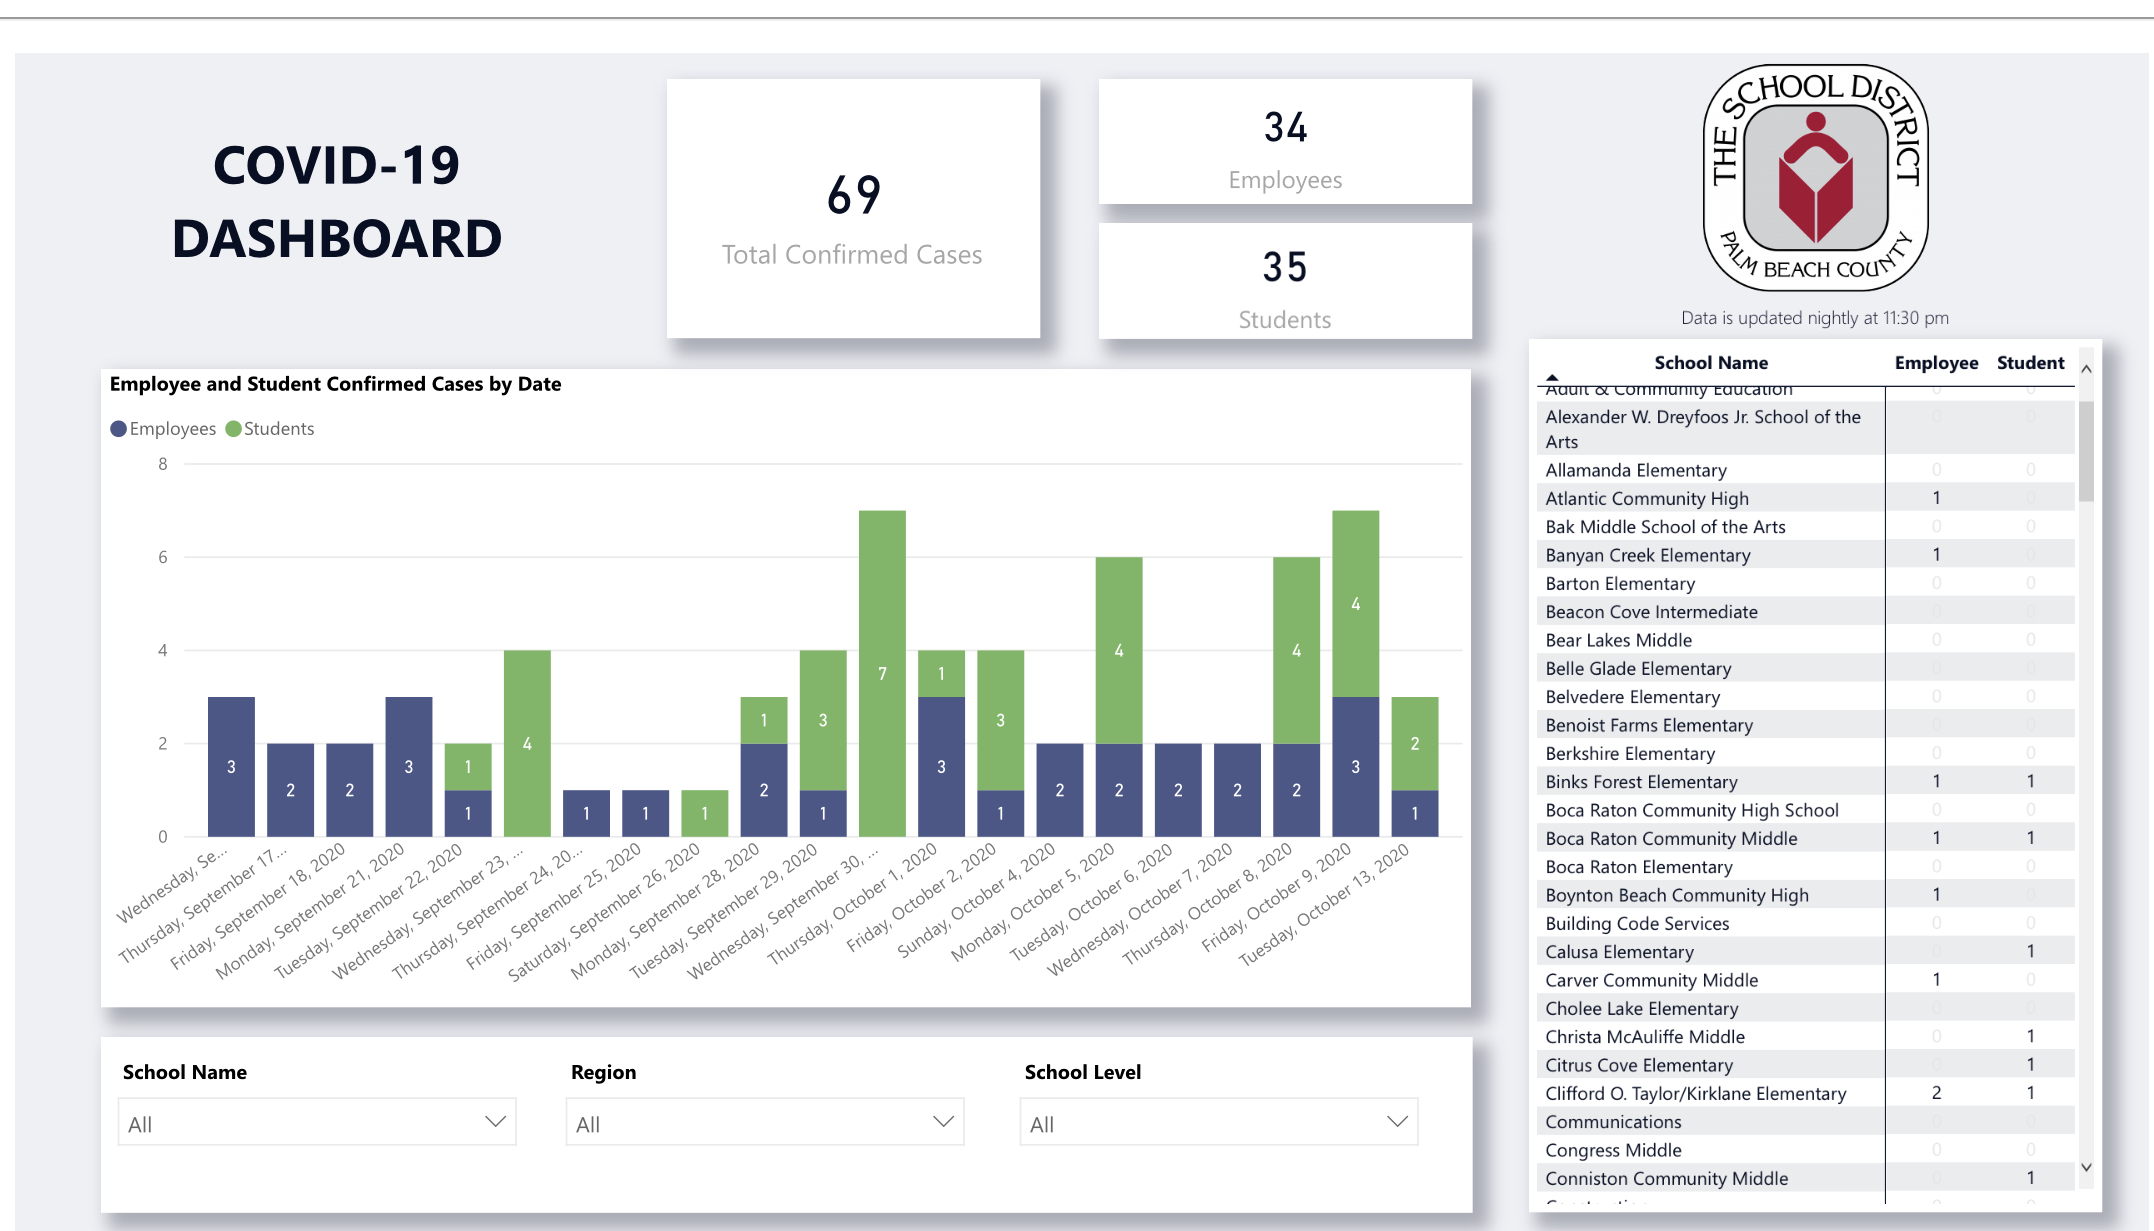 School District COVID Dashboard